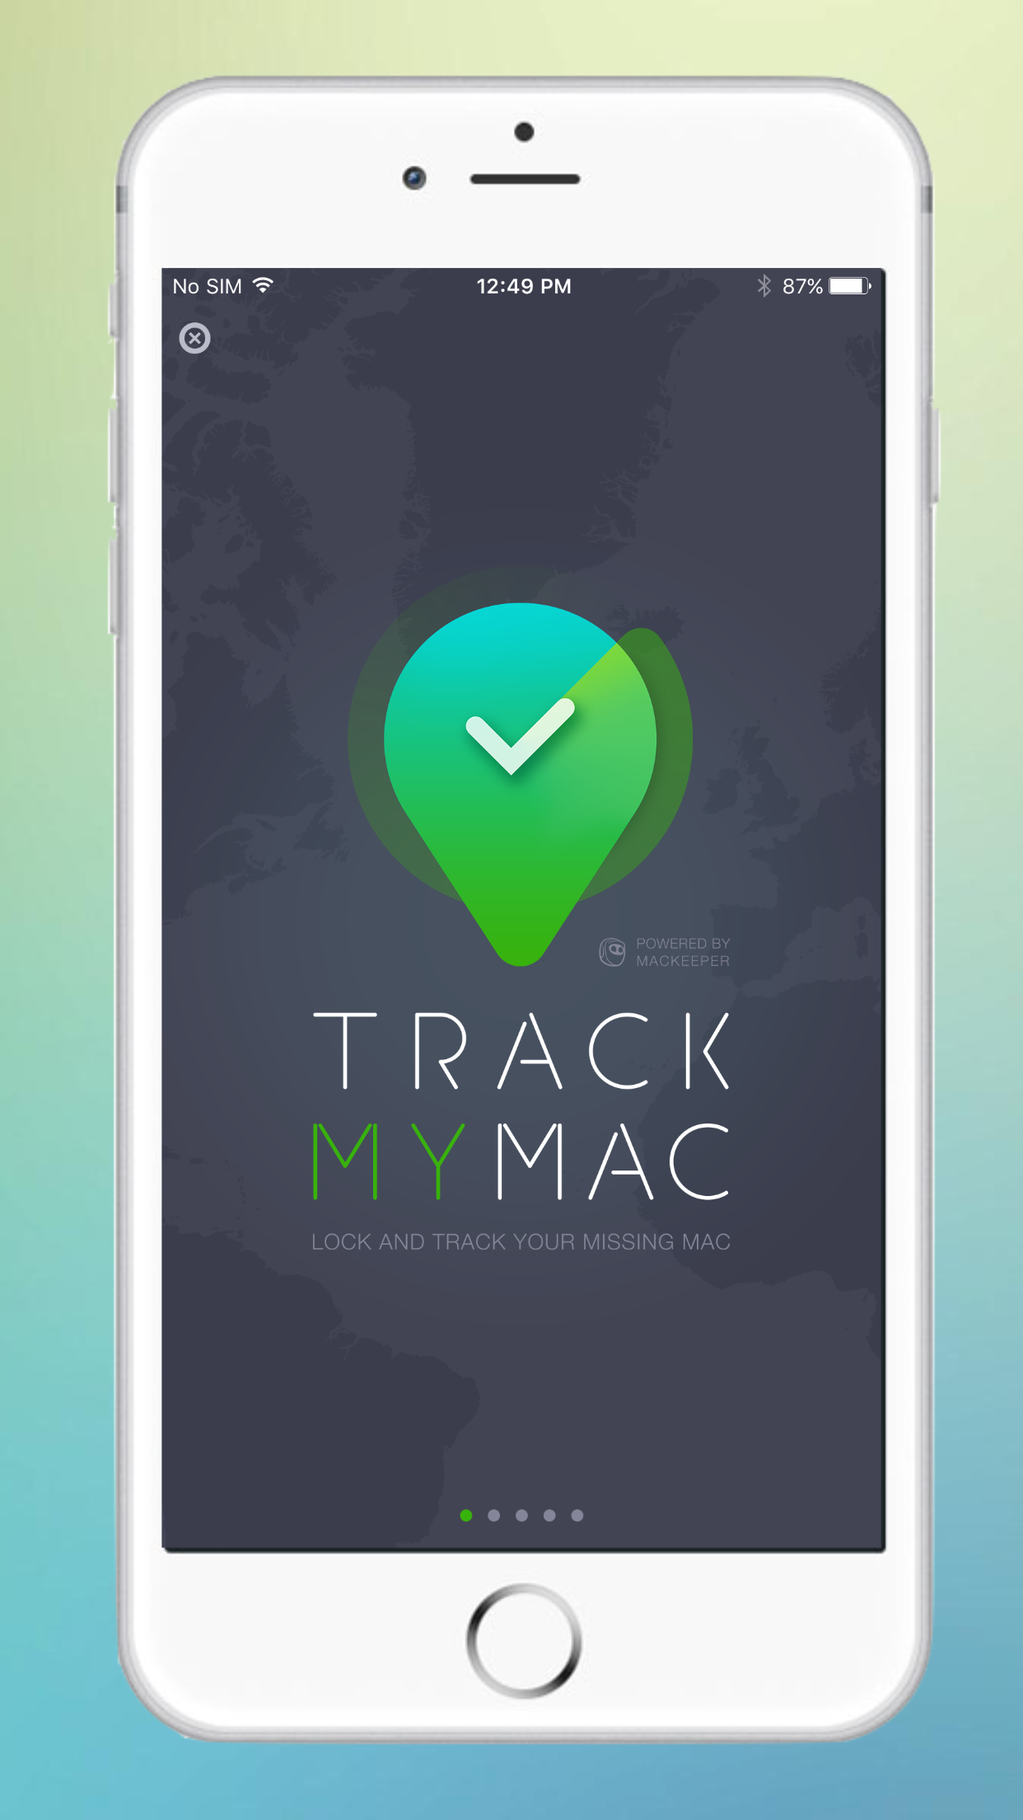 Track My Mac Screenshot 1